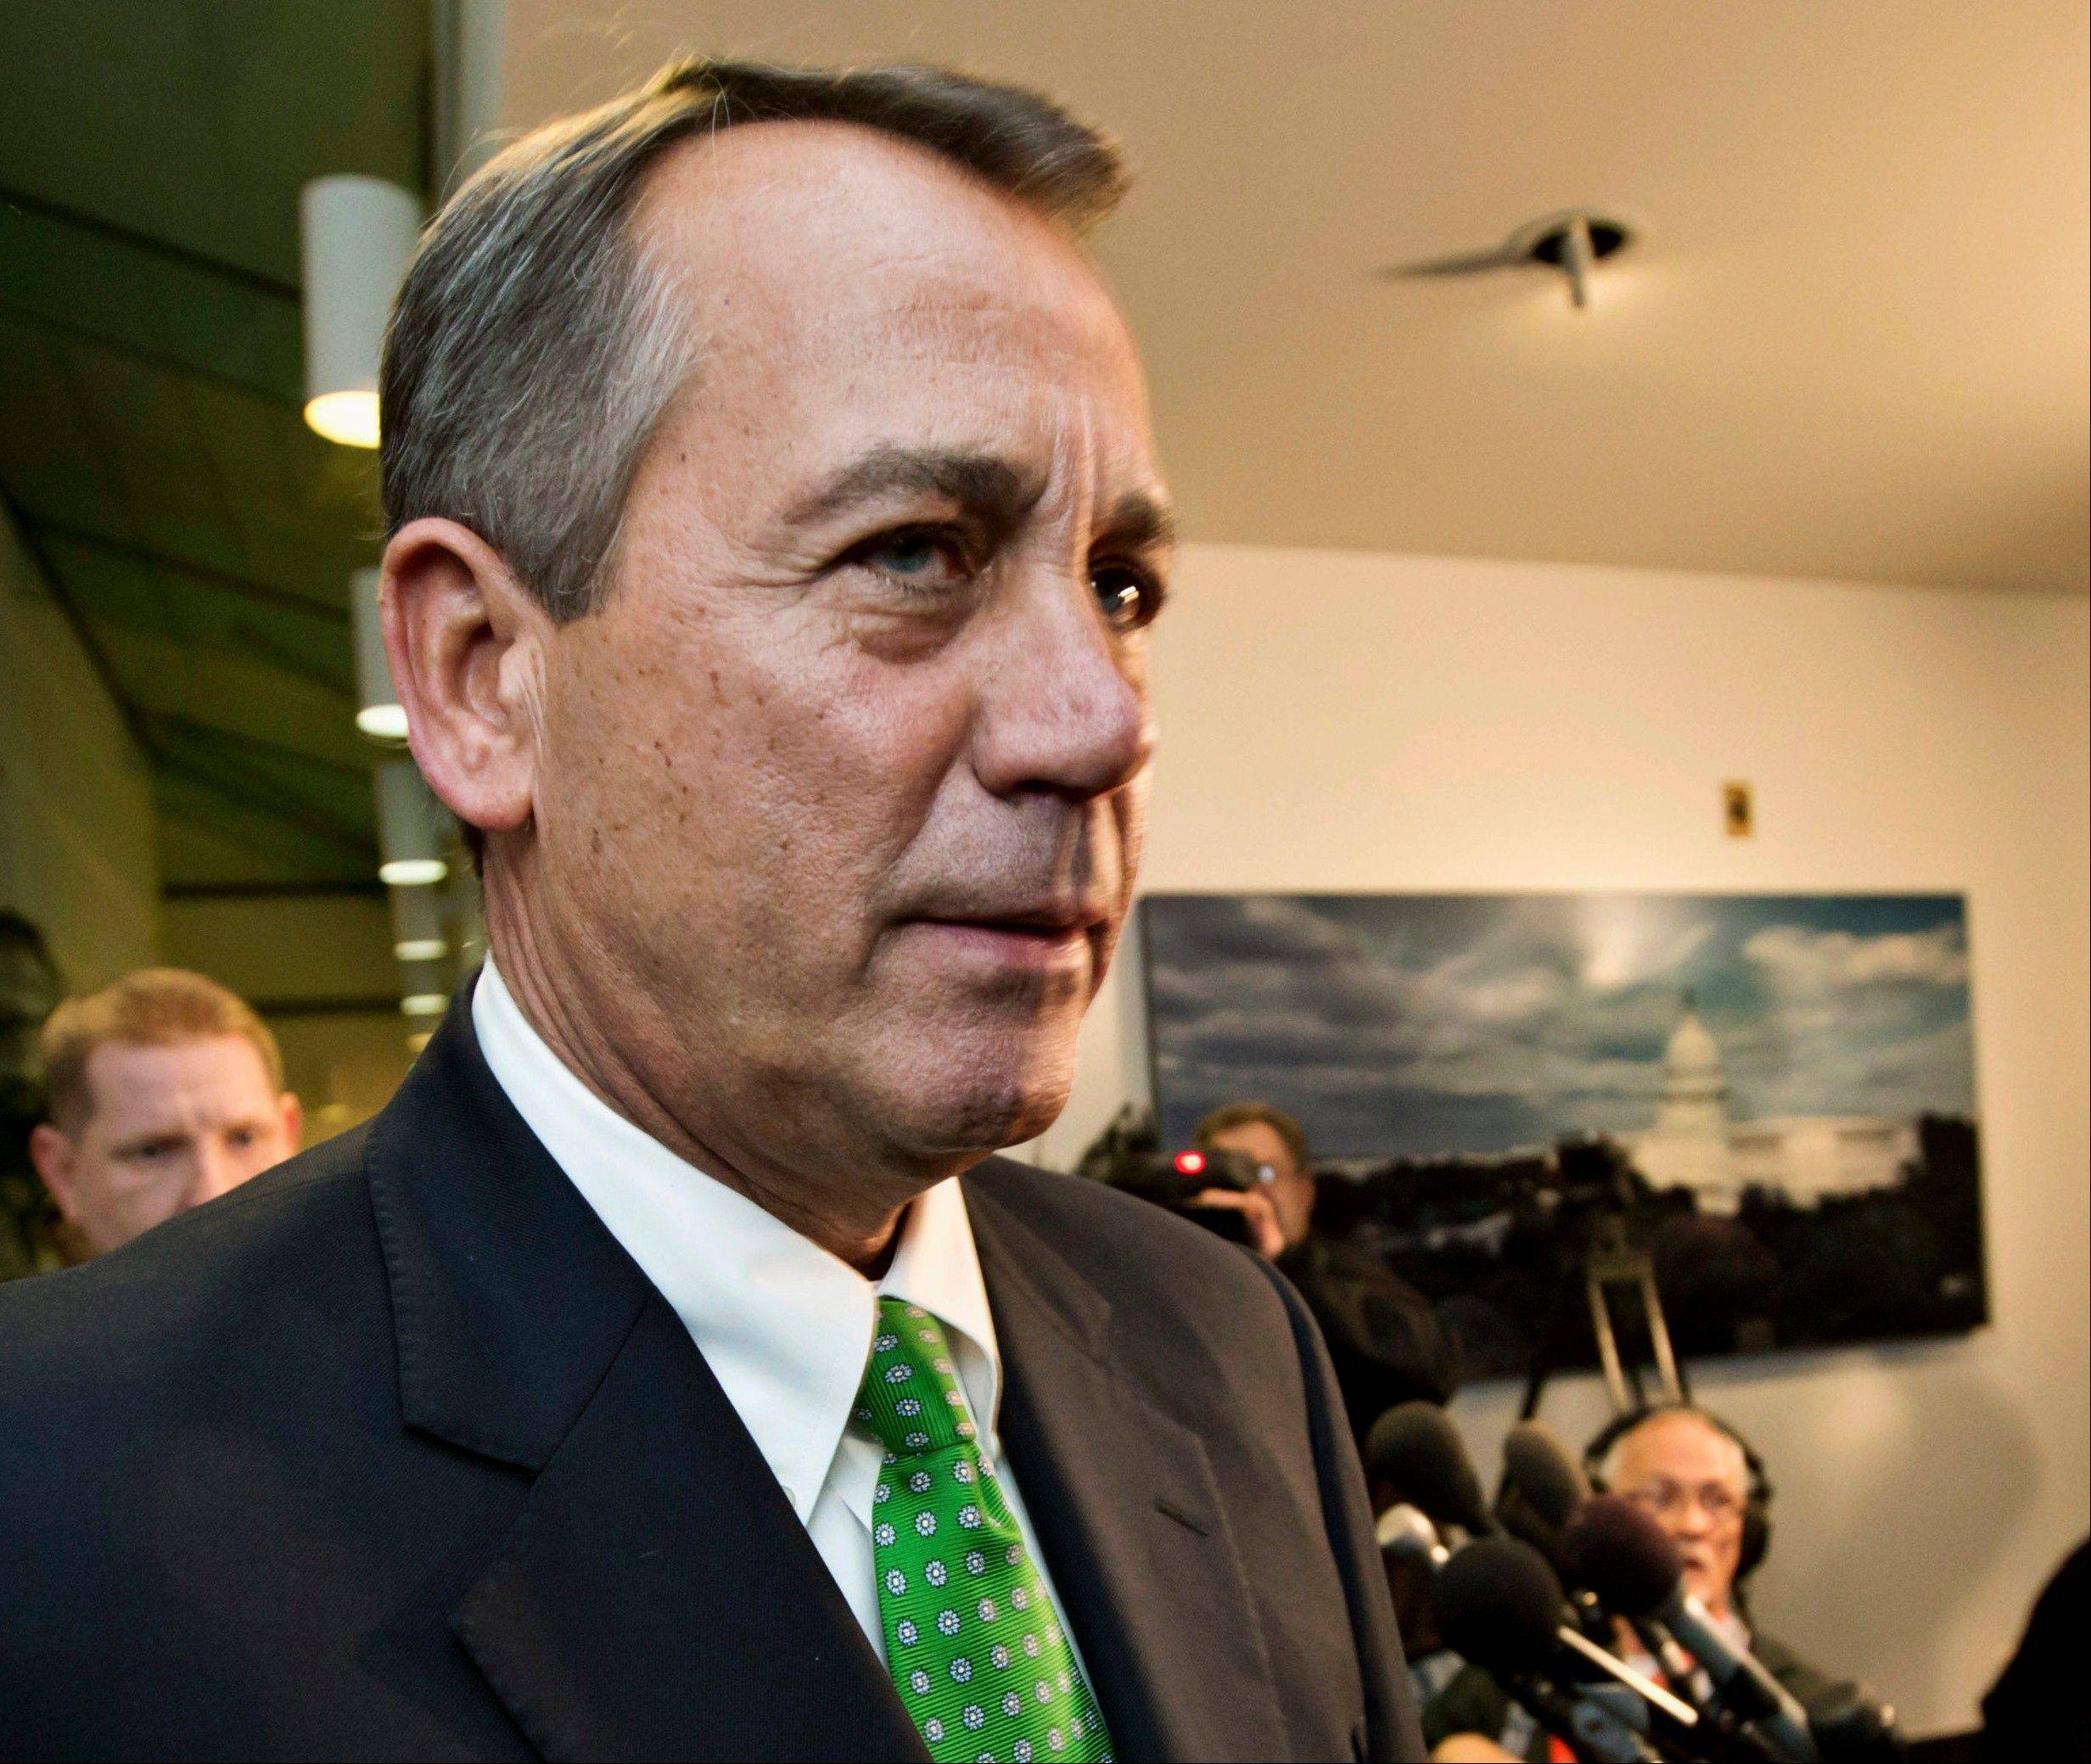 Associated Press/Jan. 1, 2013House Speaker John Boehner of Ohio and GOP-controlled House will vote next week to permit the government to borrow more money to meet its obligations, a move aimed at heading off a market-rattling confrontation with President Barack Obama over the so-called debt limit.